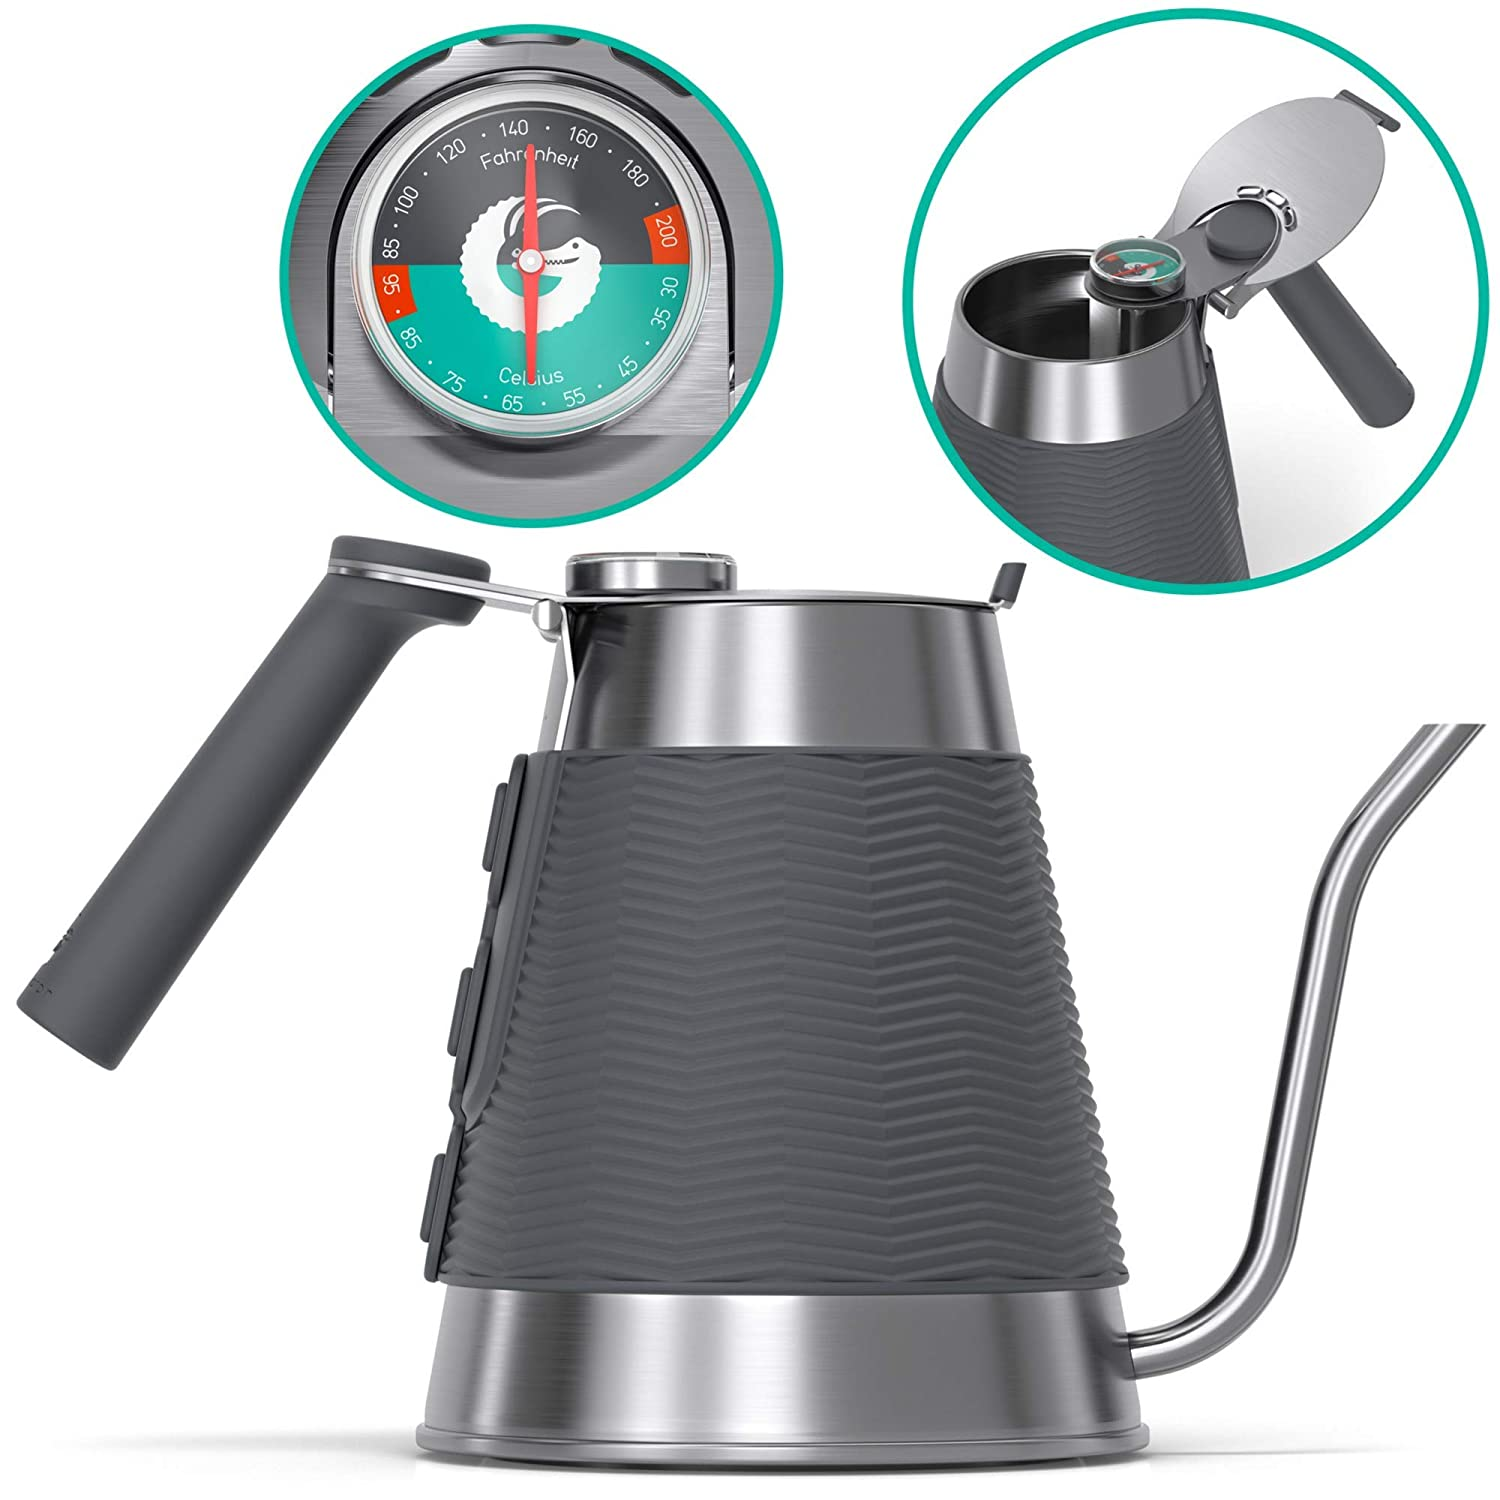 Coffee Gator True Brew Kettle - Professional Pour Over Kettle with Precision Gooseneck Spout, Integrated Thermometer and Speedy-fill Lid - Works on all Stovetops Including Induction - 54 ounce